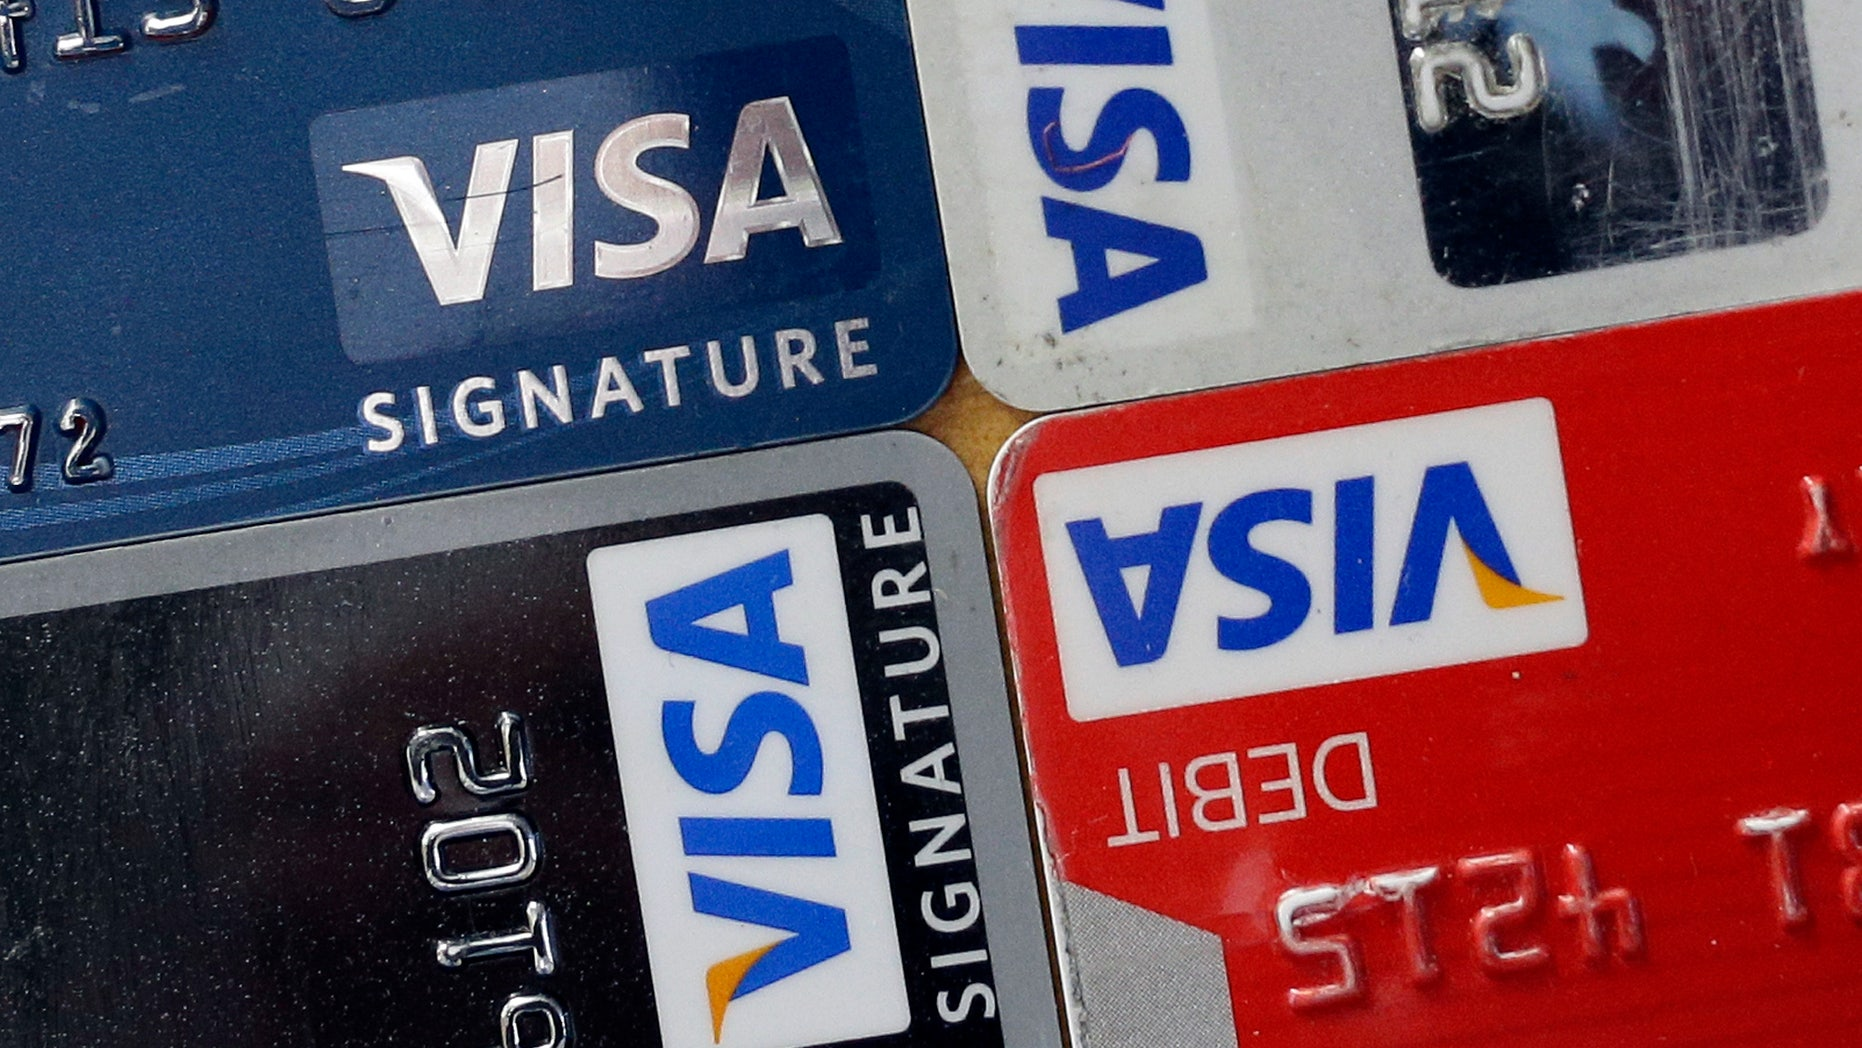 FILE - In this April 25, 2013 file photo, credit and debit cards are displayed for a photographer in Baltimore. Visa Inc. reports quarterly financial results after the market closes on Wednesday, Oct, 30, 2013. (AP Photo/Patrick Semansky, File)